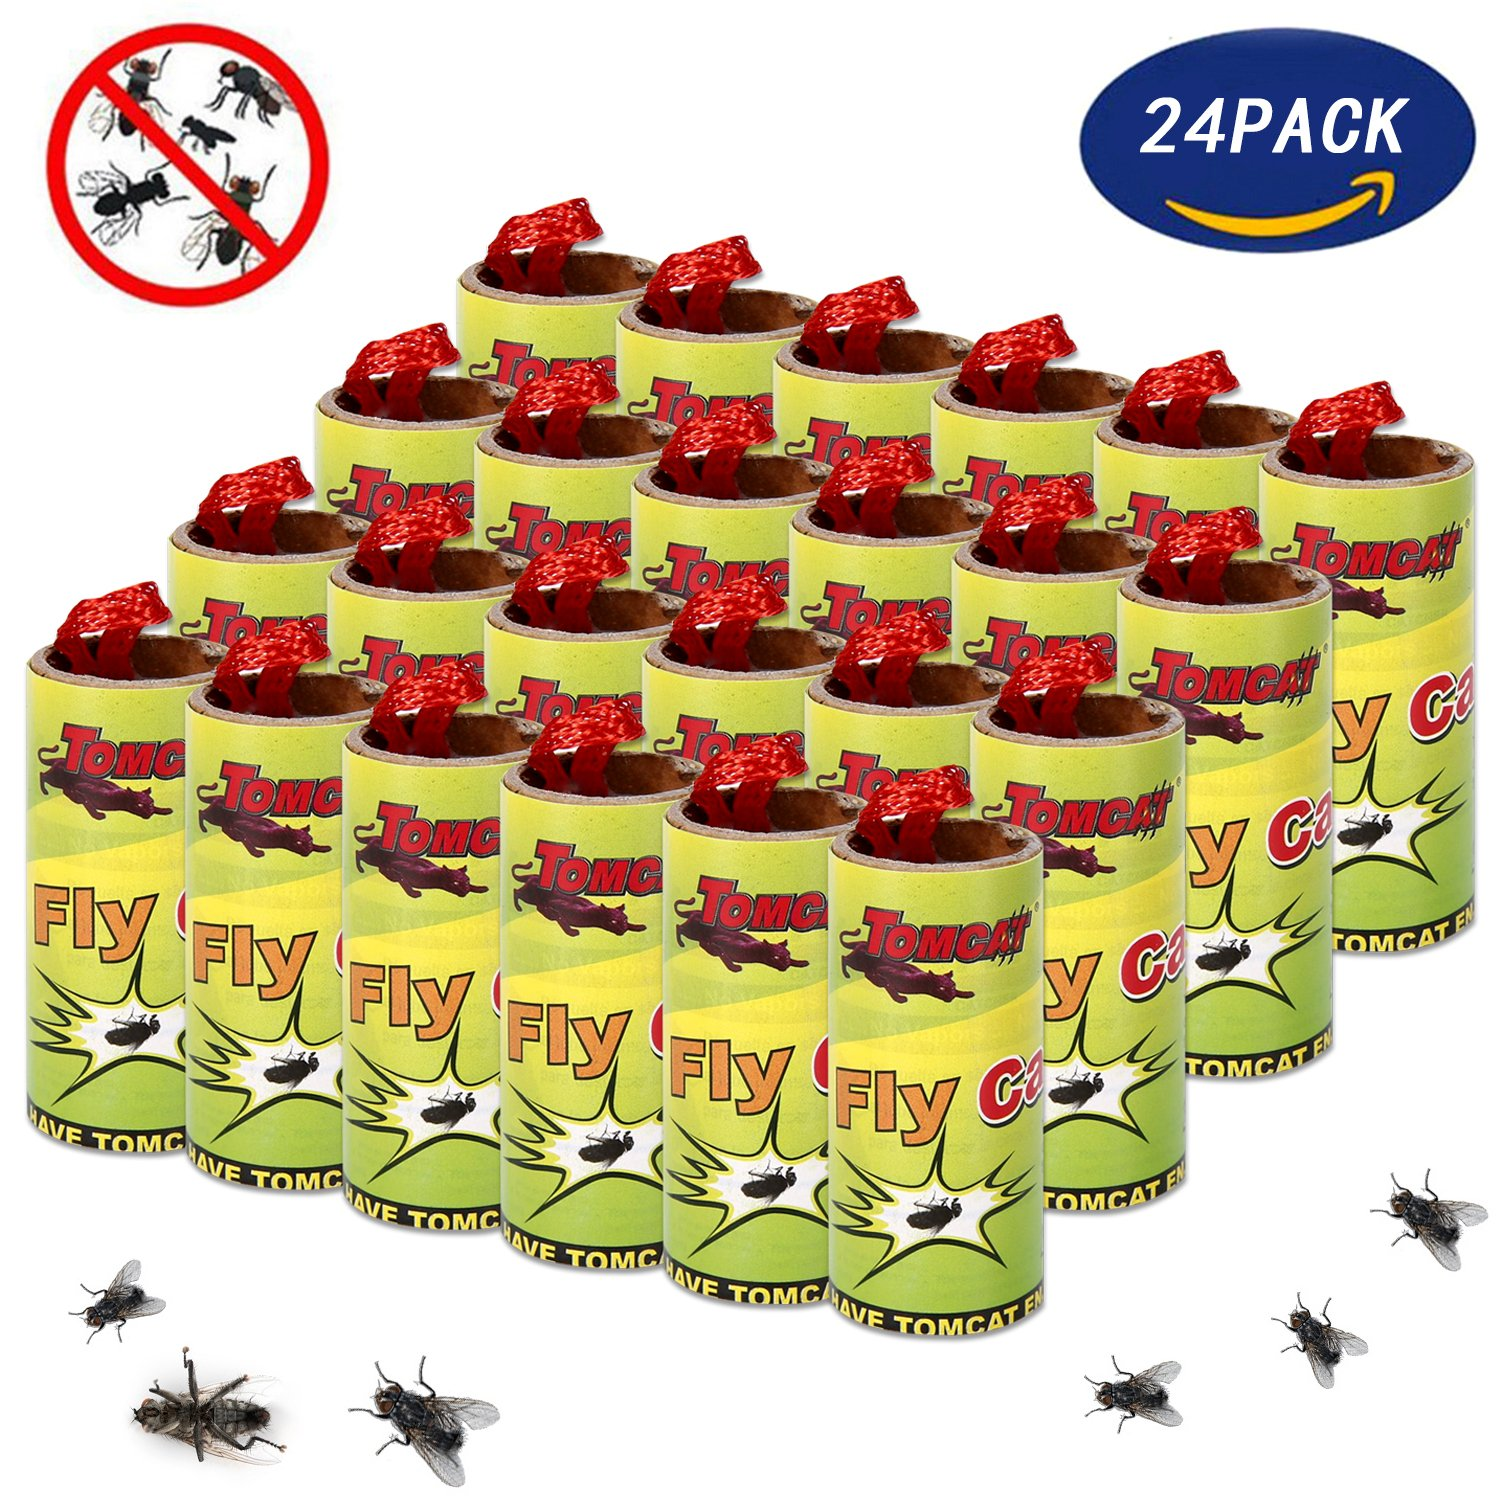 Miohy Fly Paper Strips,Fly Trap, Fly Catcher Trap, Fly Ribbon, Fly Bait Victor Fly Bait -Set of 6 Card,24 PCS